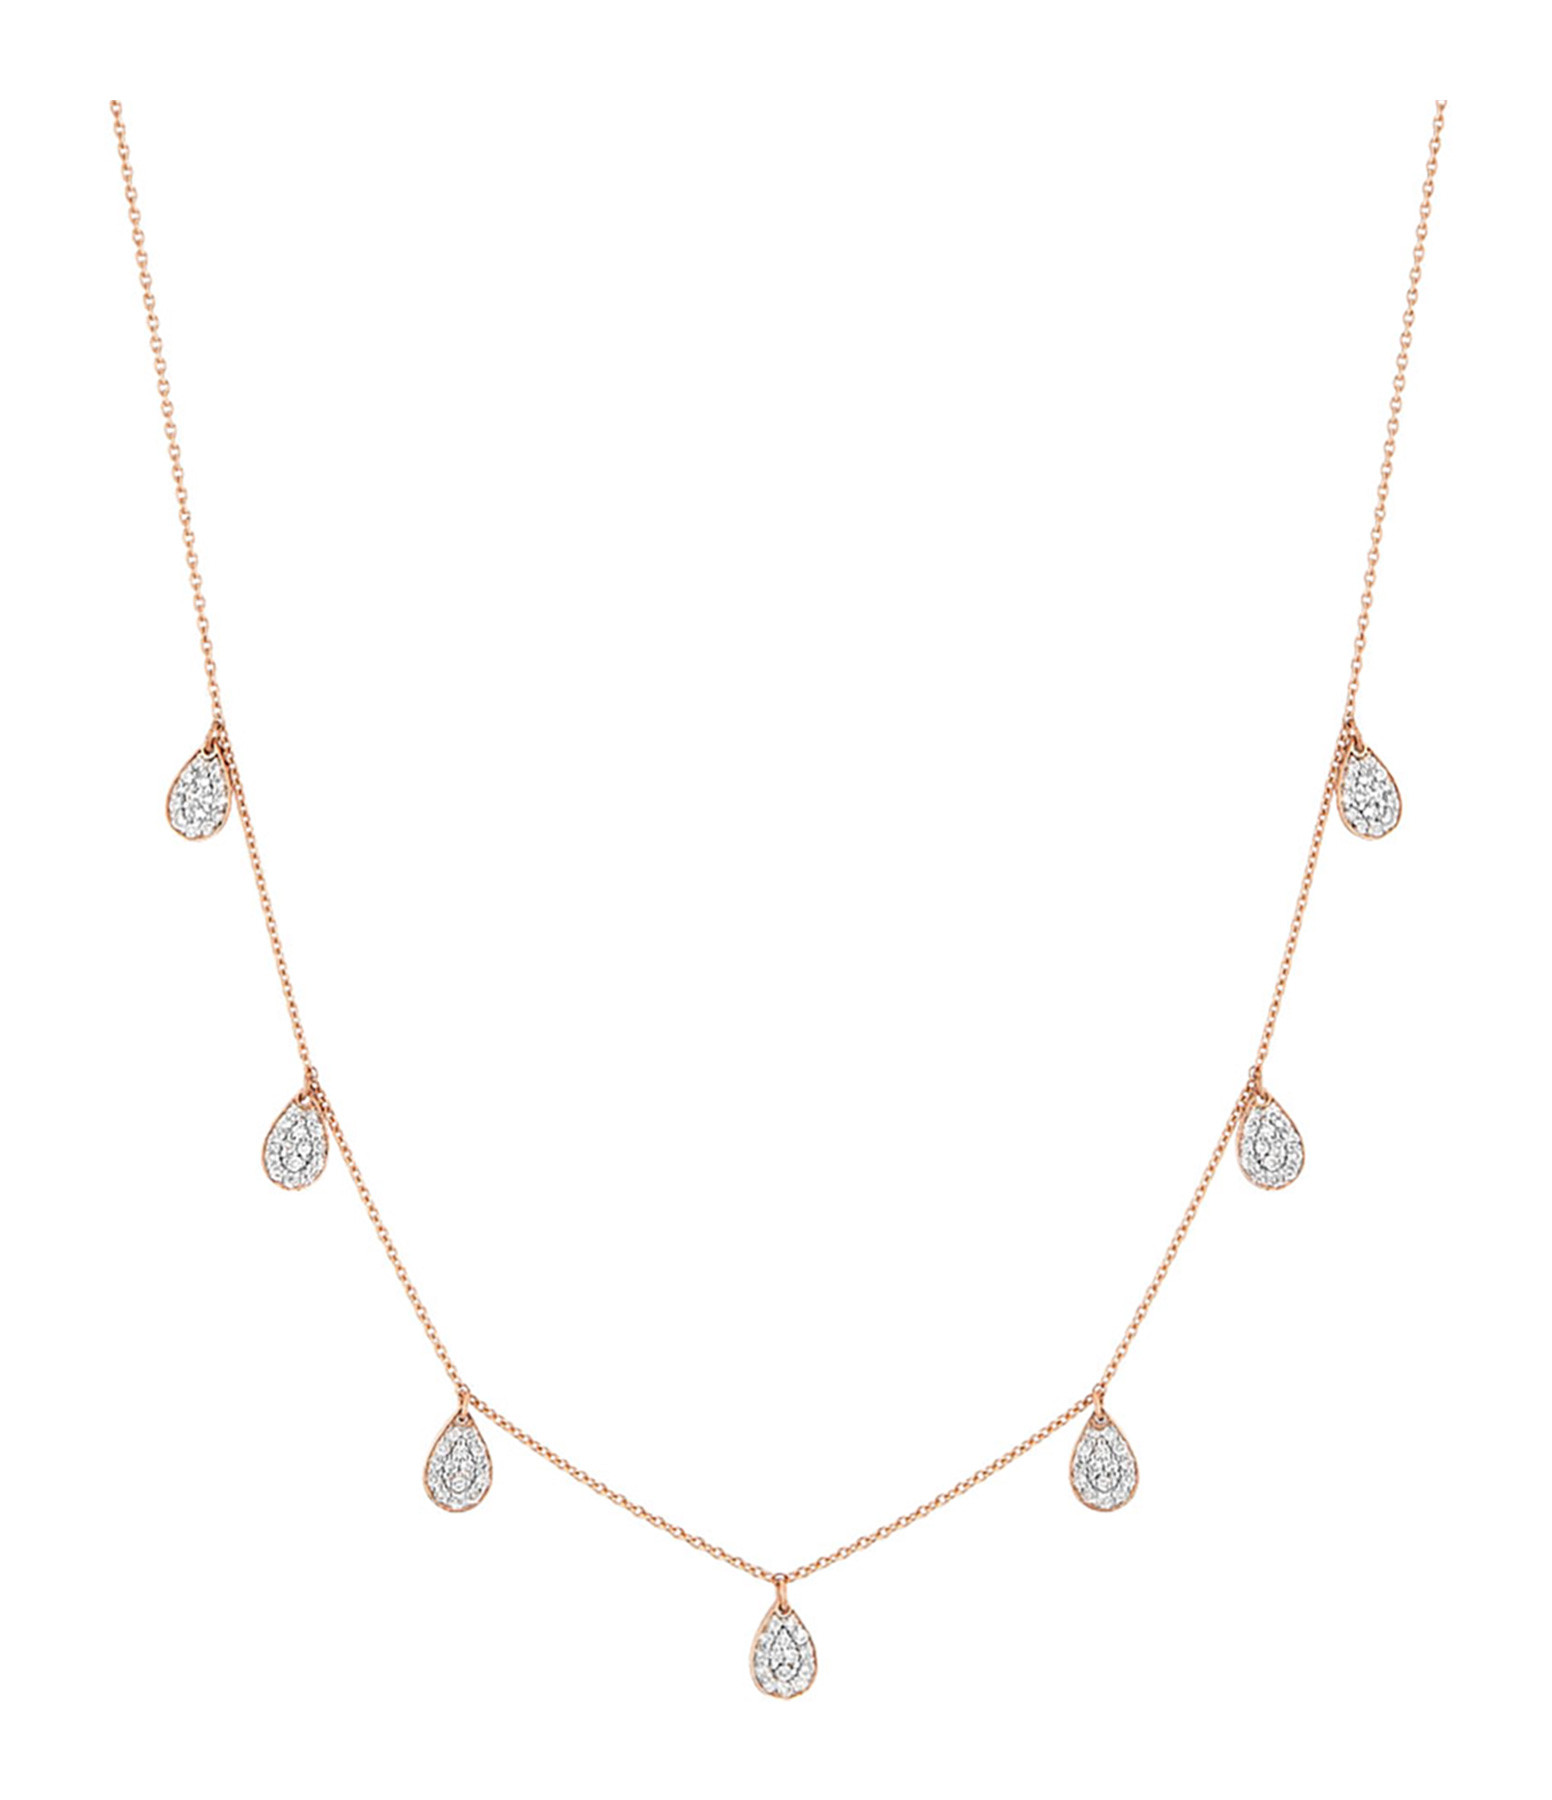 GINETTE NY - Collier 7 Mini Bliss Diamants Or Rose